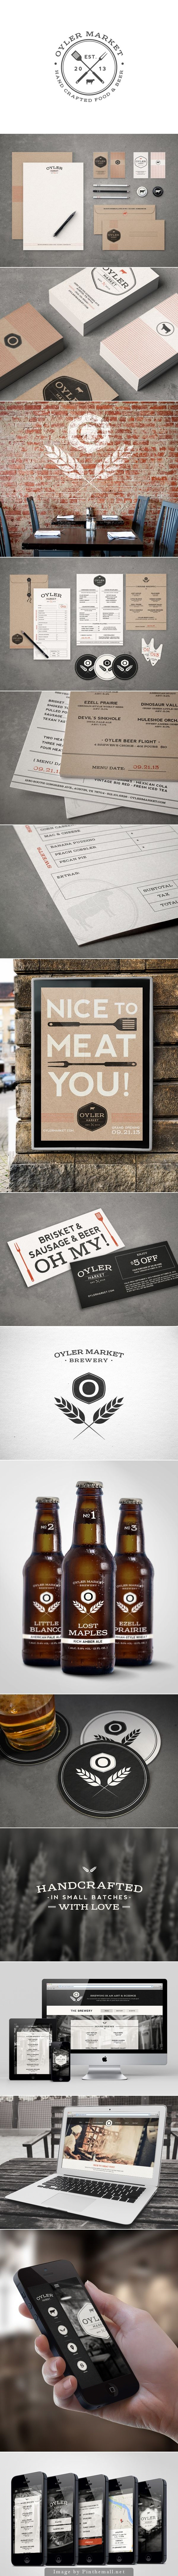 Identity / Oyler-Market-Barbecue-Brewer